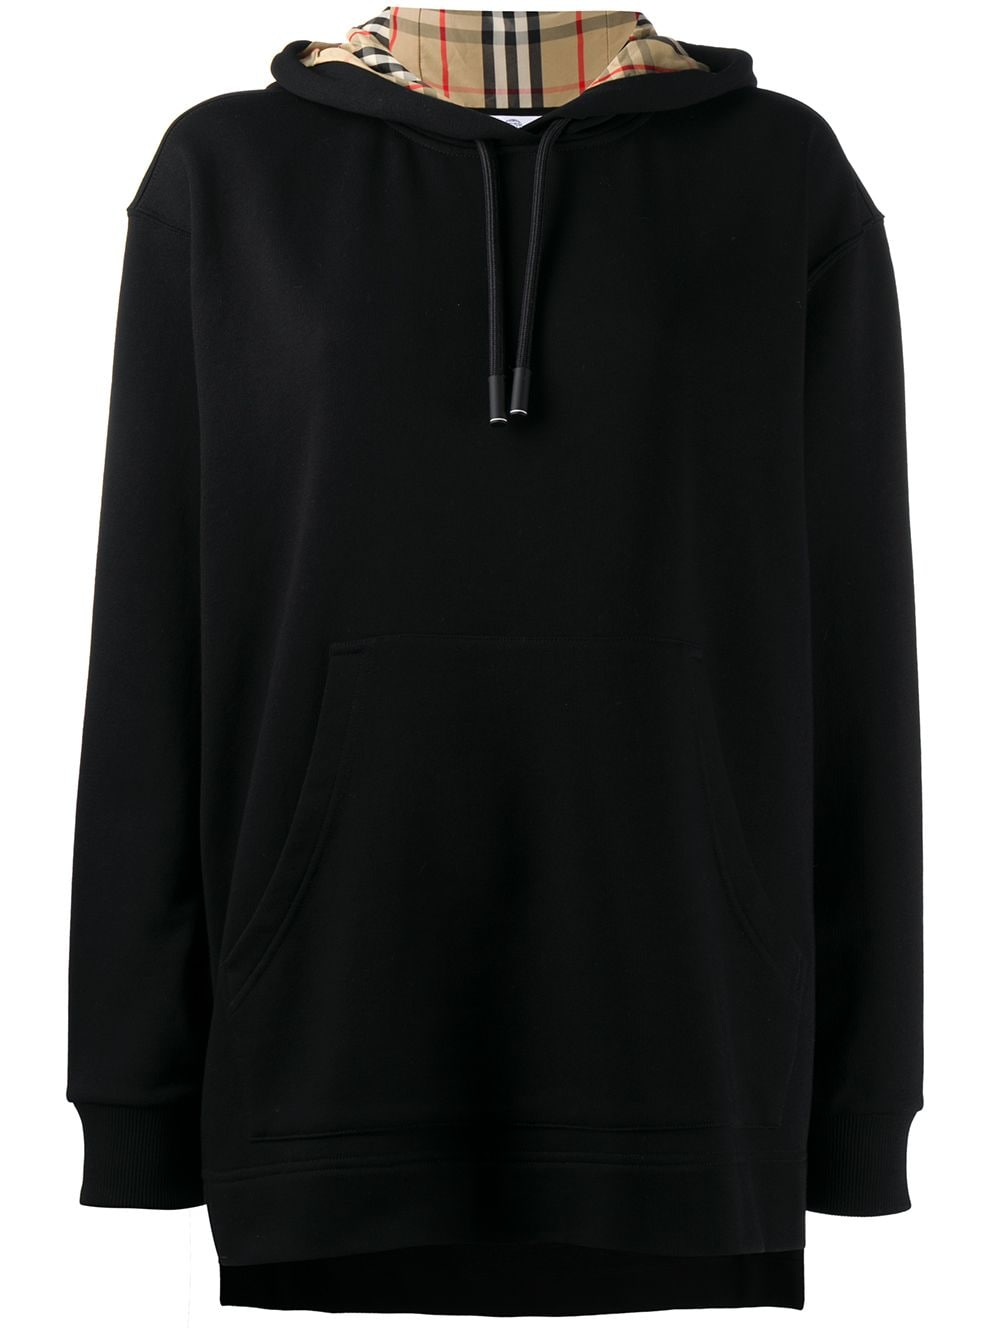 Burberry oversized checked hoodie - Black von Burberry